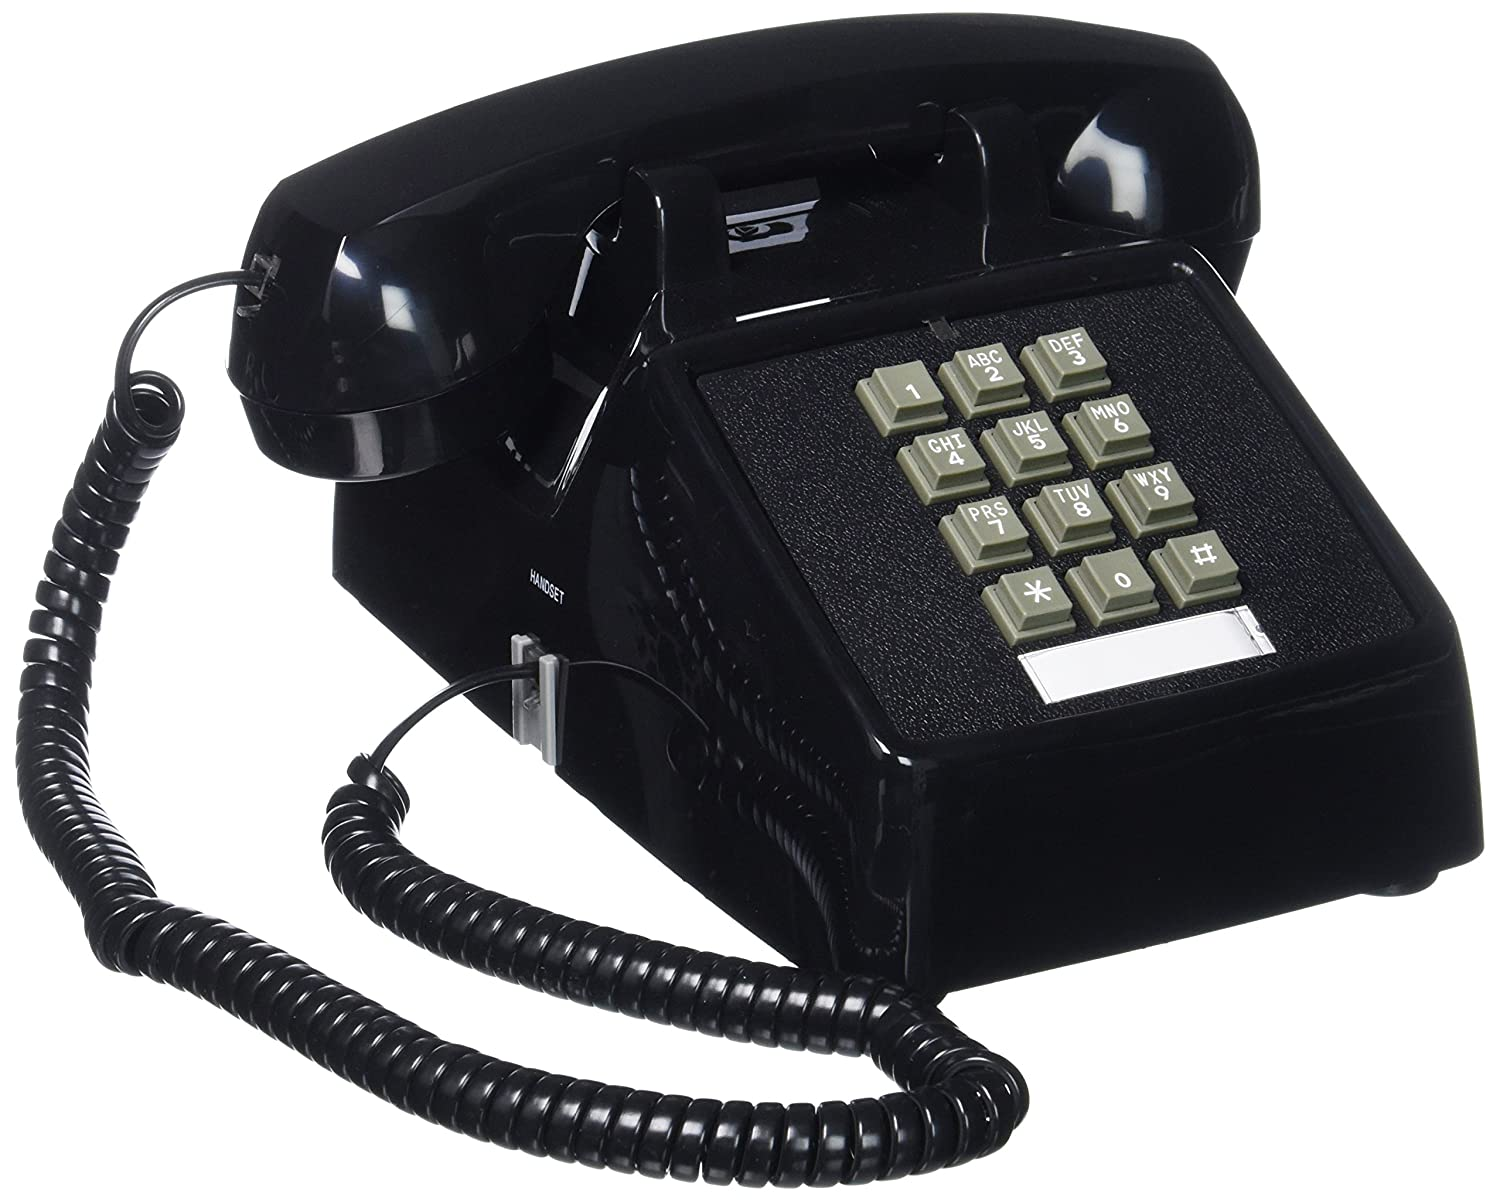 Amazon.com : Cortelco (ITT-2500-MD-BK) Single Line Desk Telephone : Corded  Telephones : Electronics